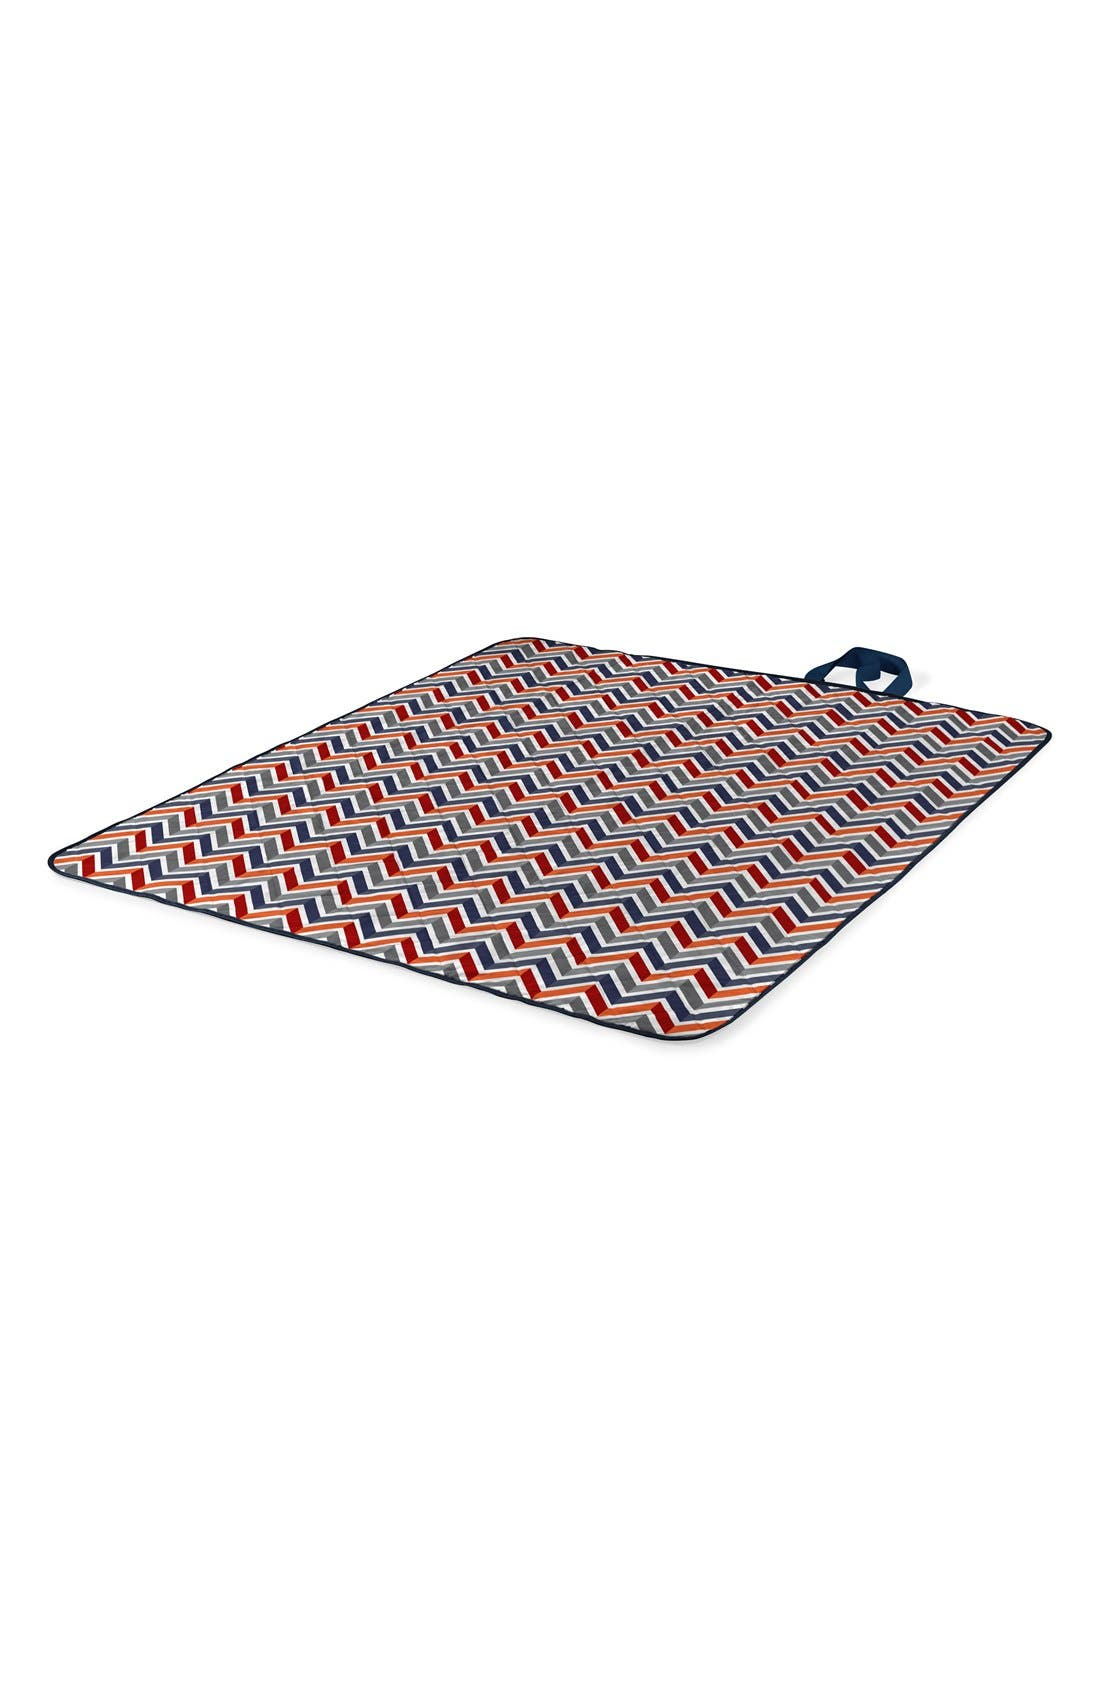 'Vista' Packable Picnic Blanket,                             Alternate thumbnail 3, color,                             Vibe